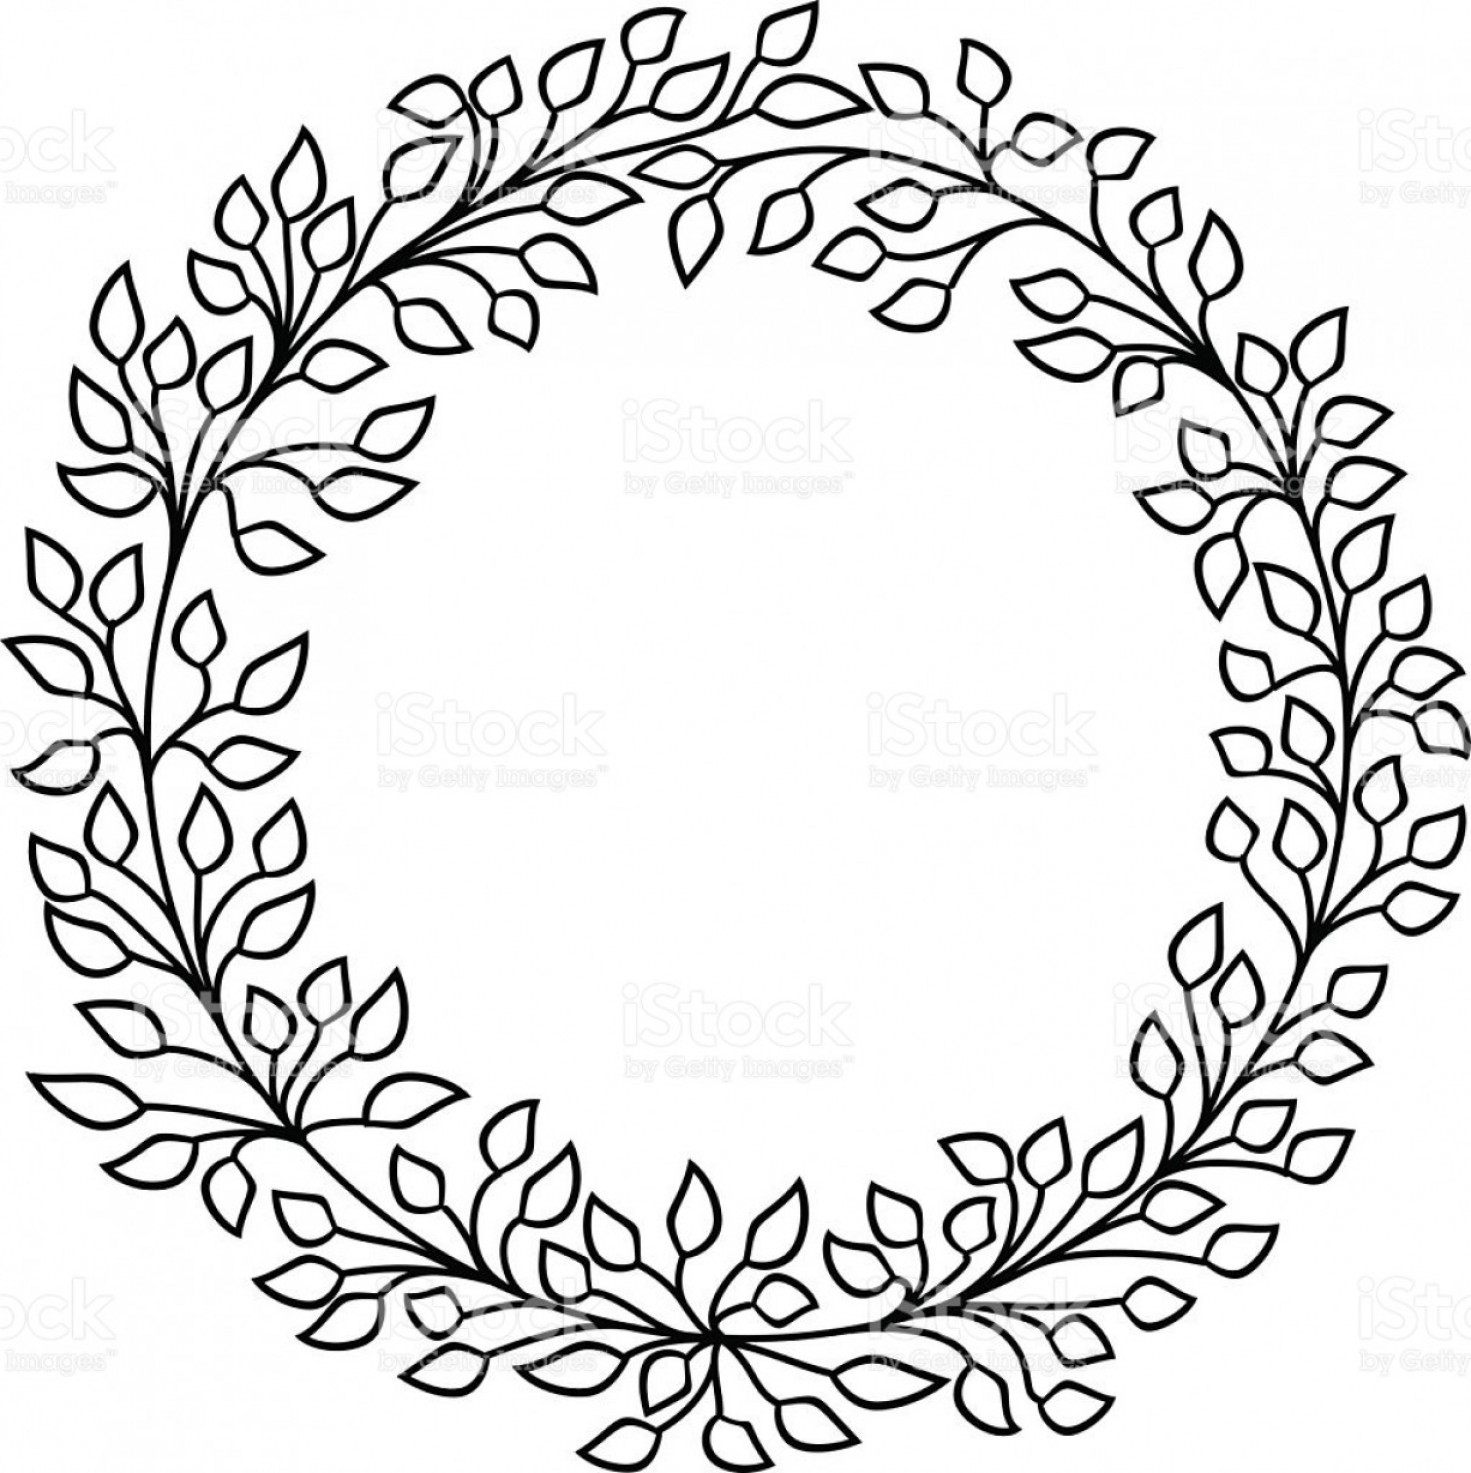 Half Leaf Wreath Vector: Leaves Vector Frame Black And White Wreath Gm